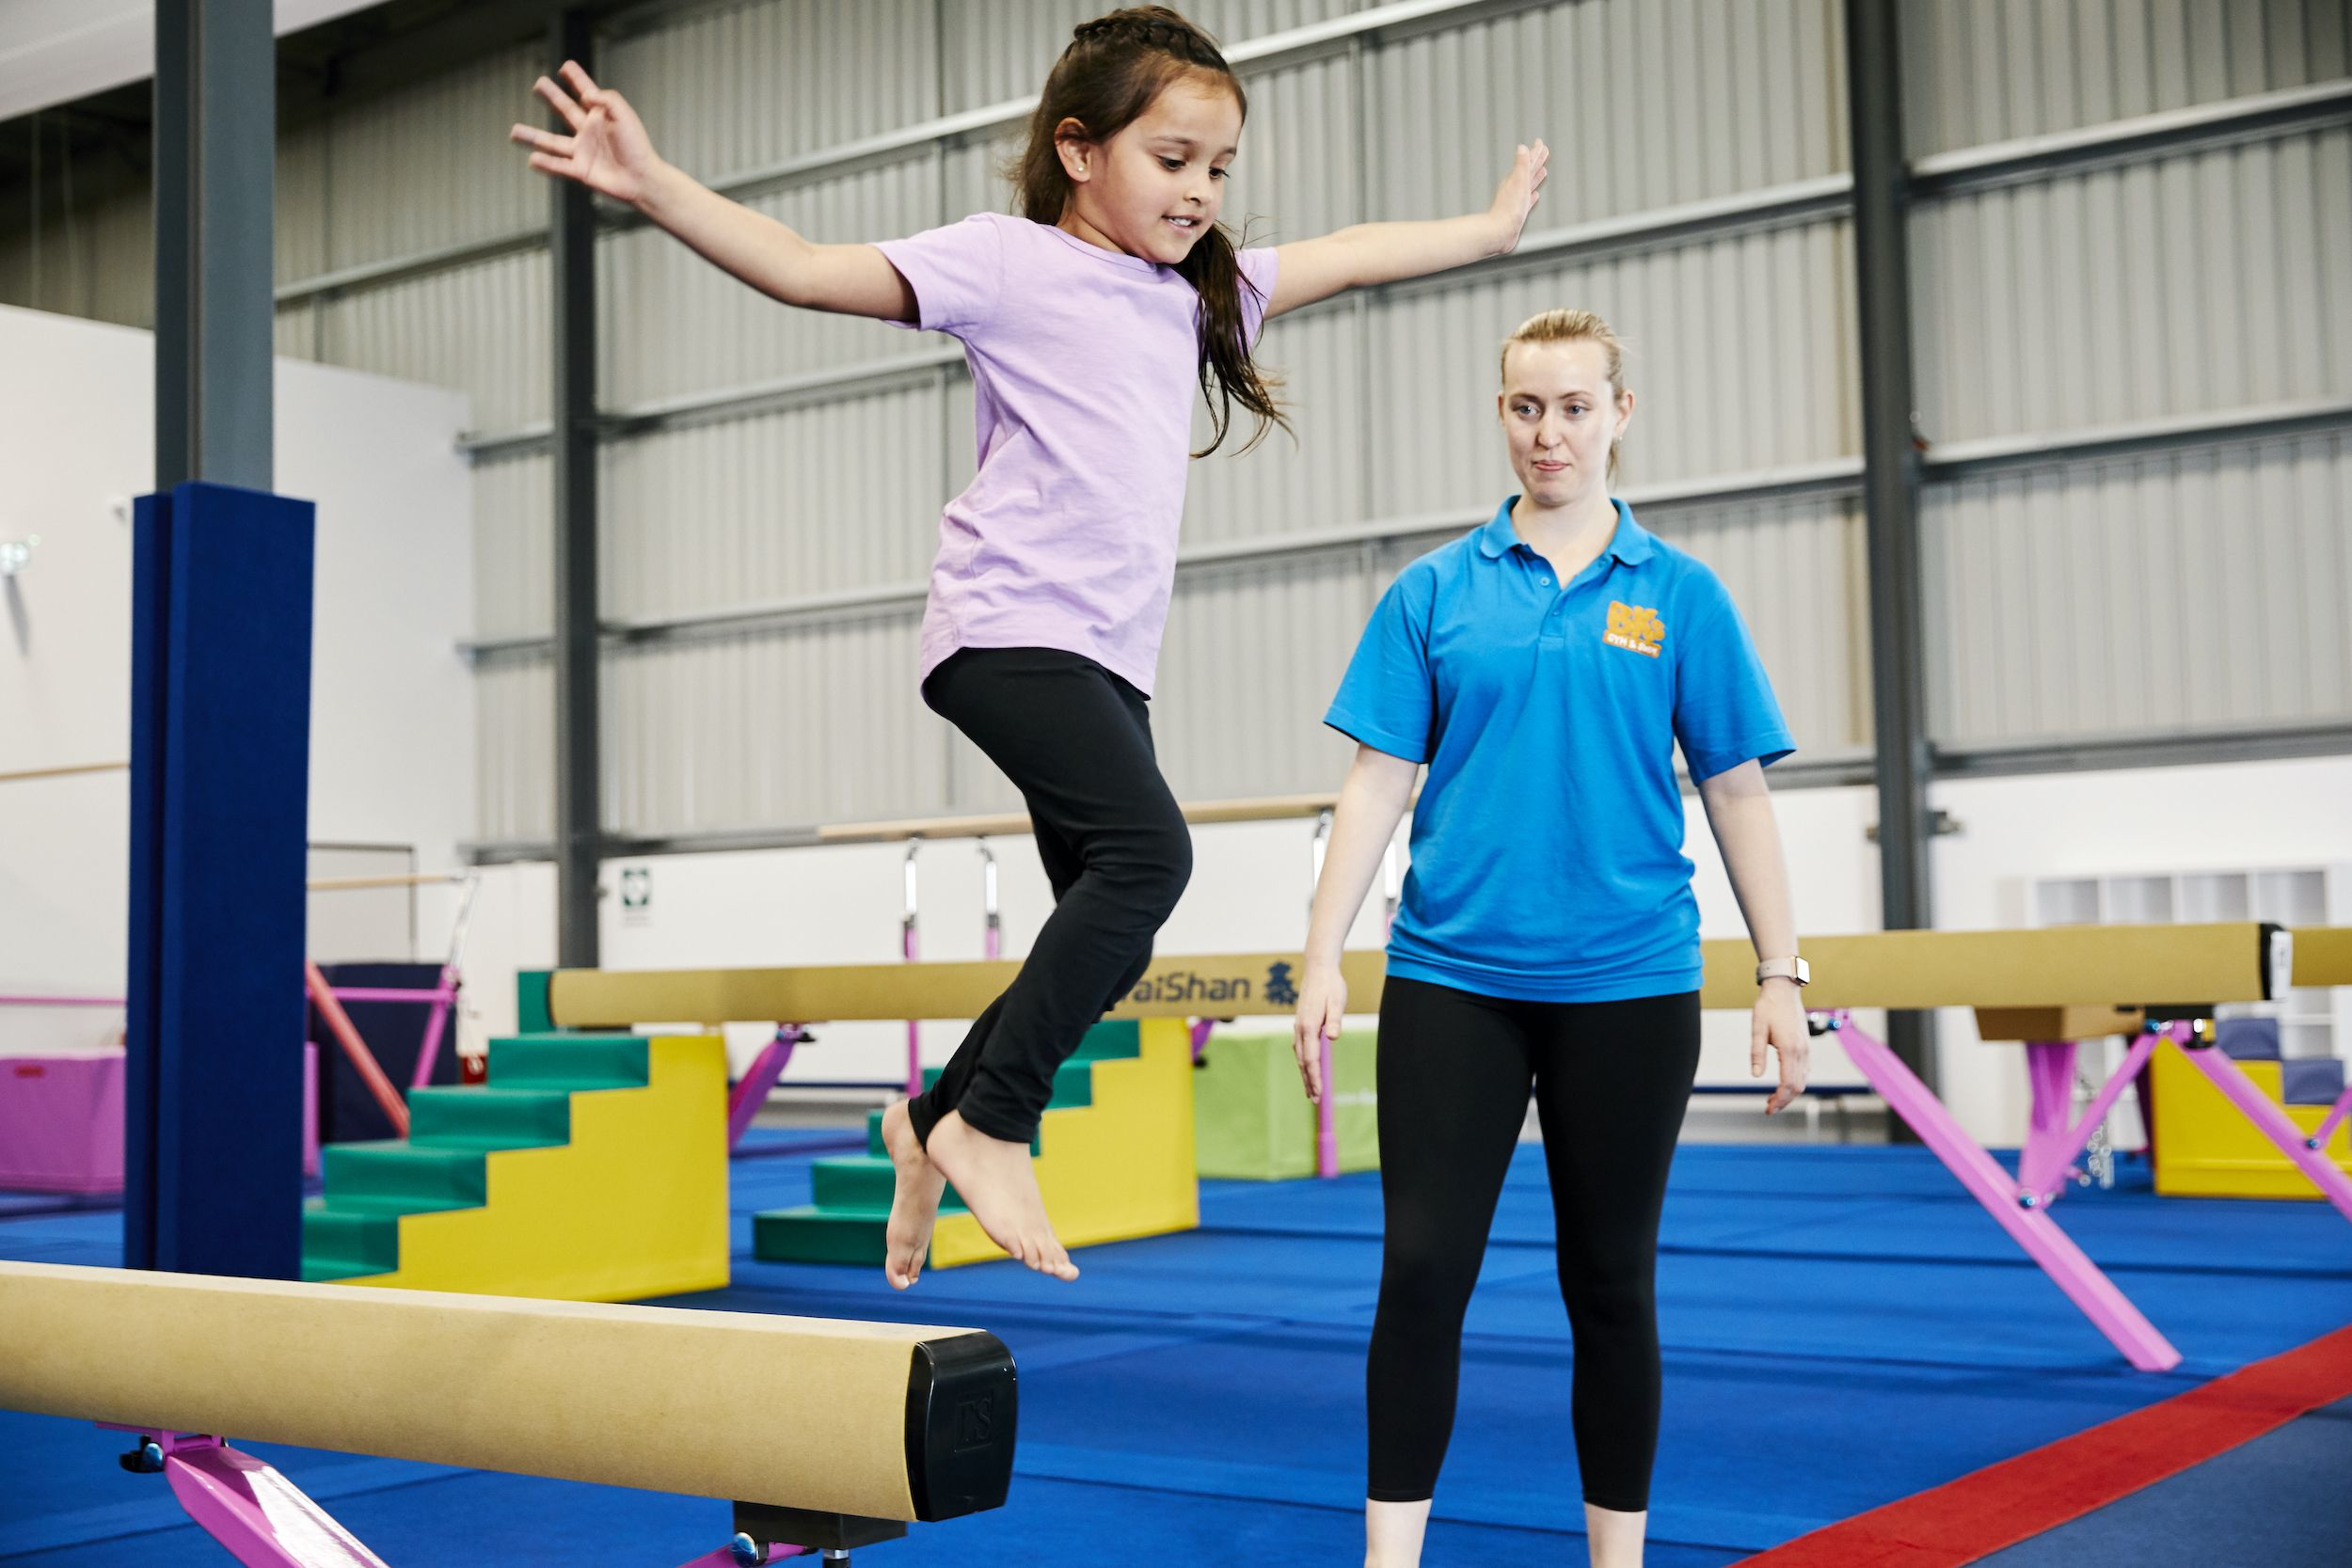 BK's Gymnastics is now franchising | Inside Franchise Business Executive